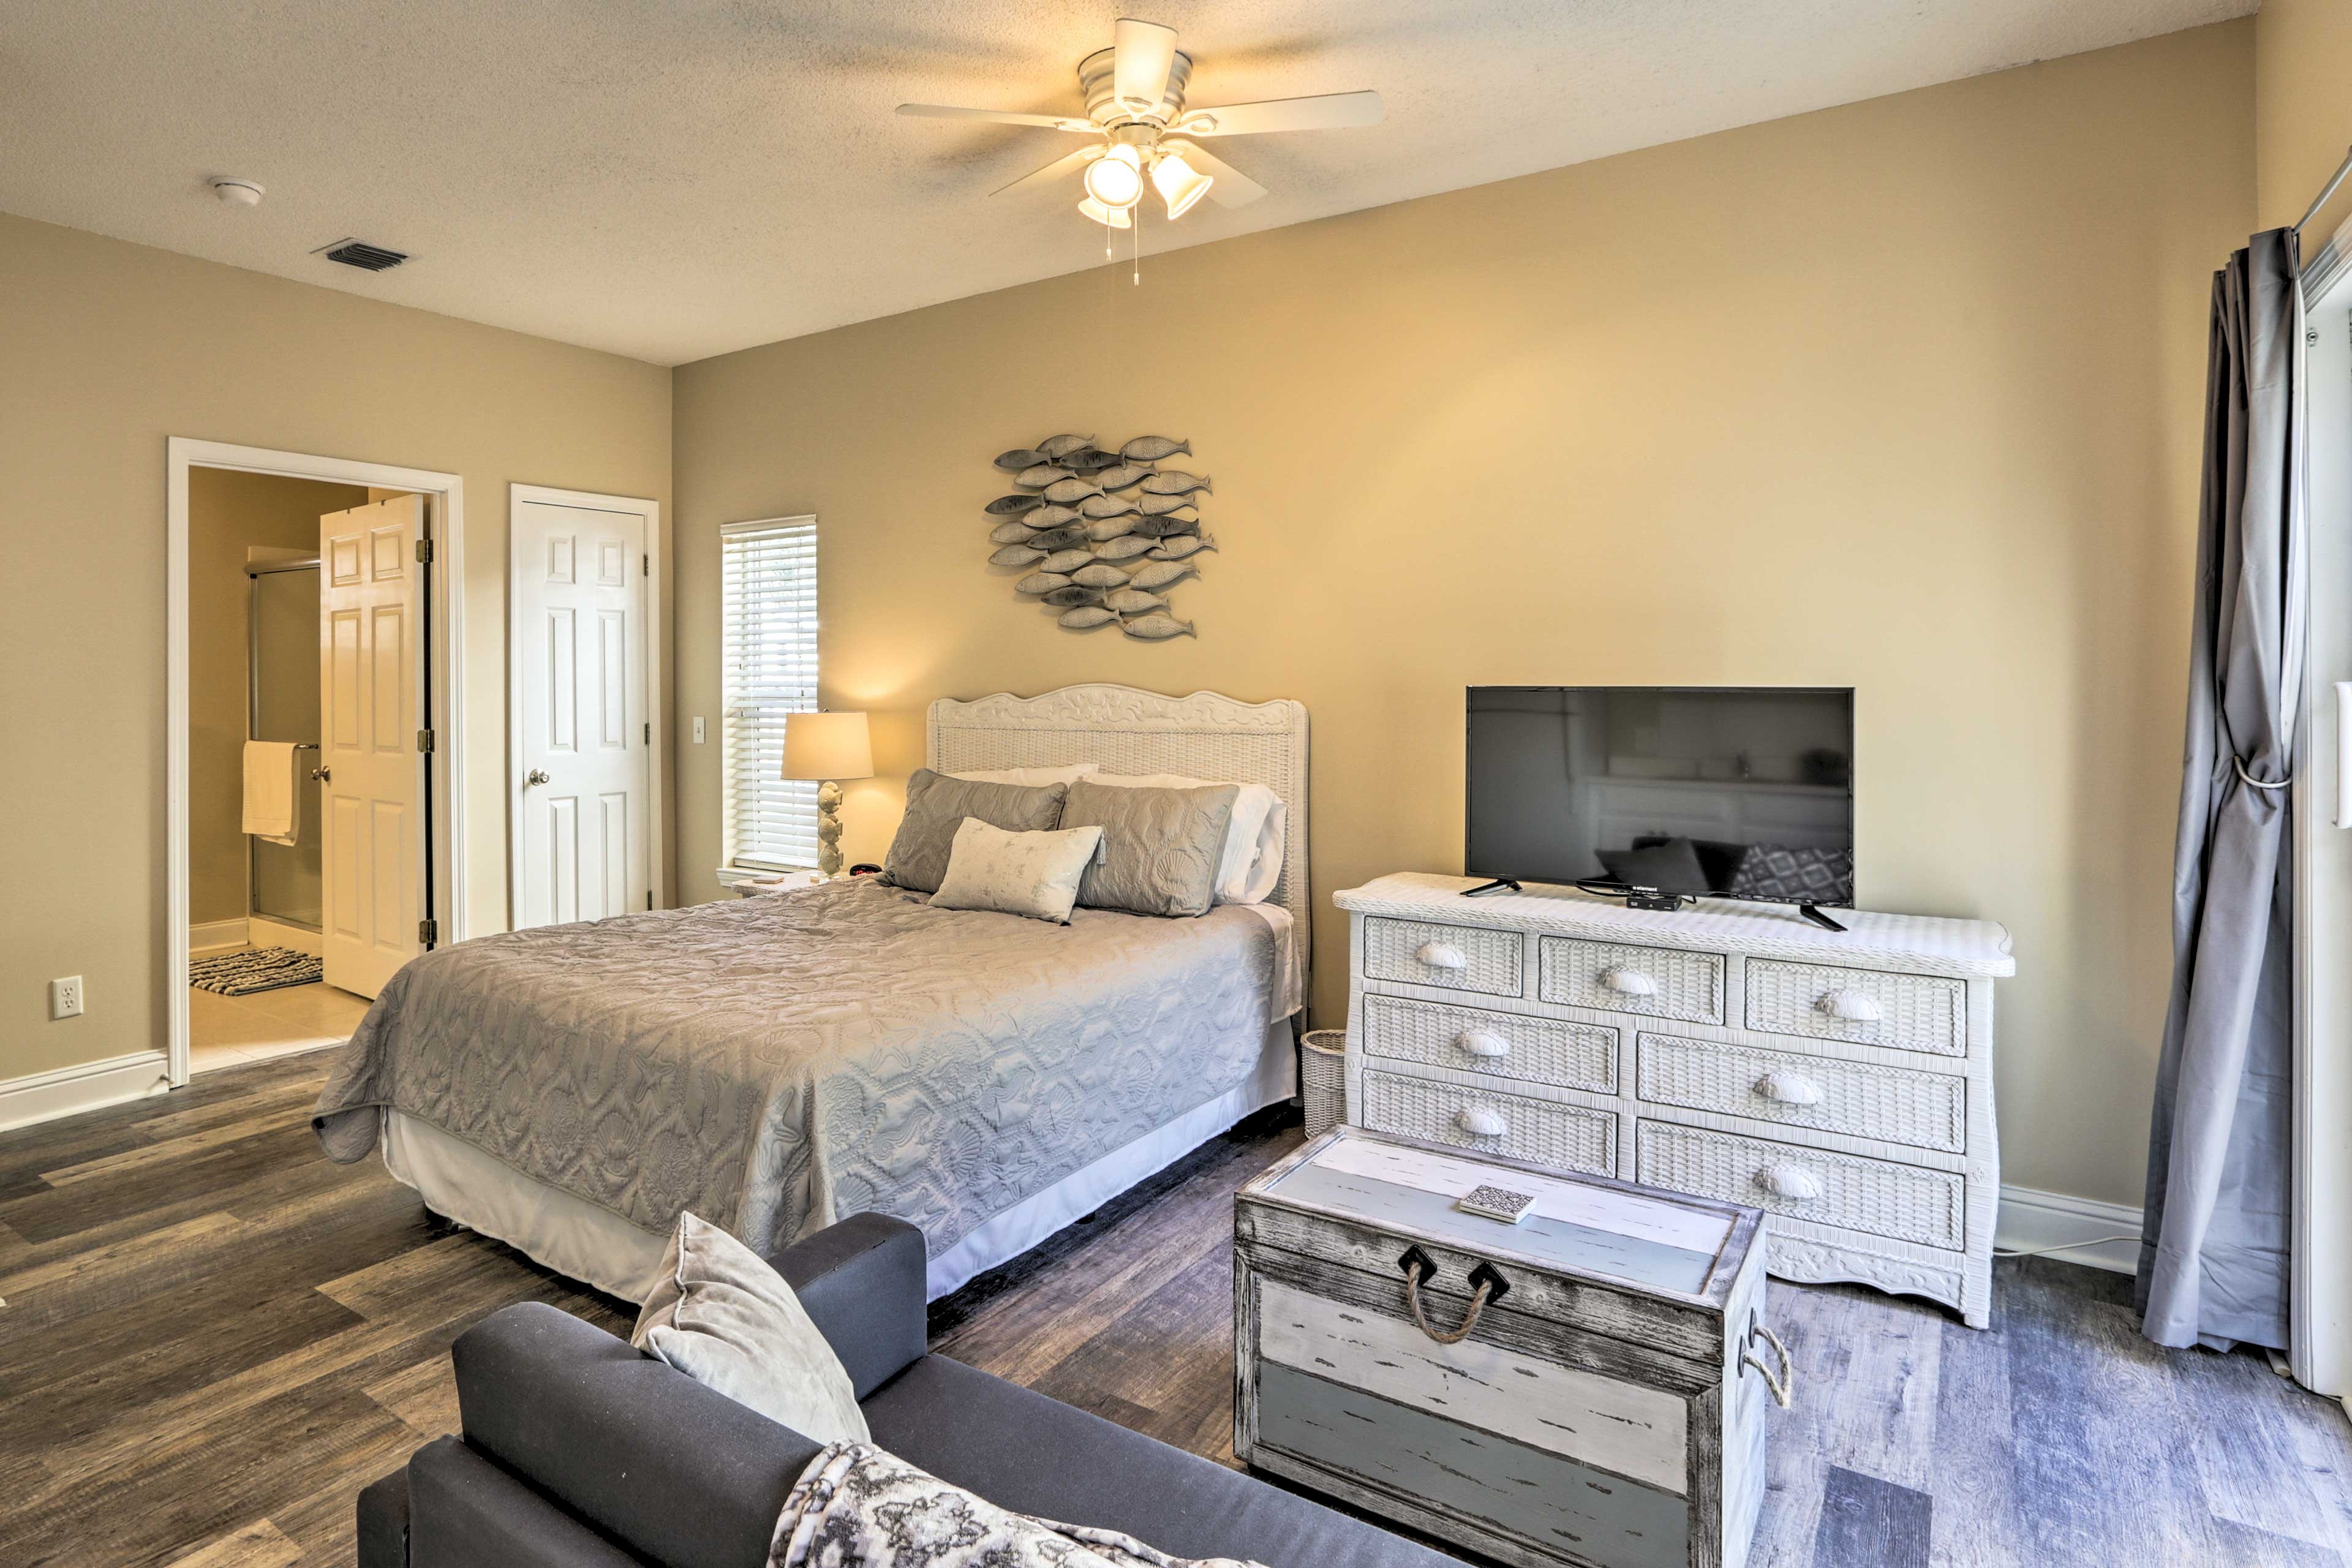 The 40-inch flat-screen TV and queen bed give you everything you need to unwind.